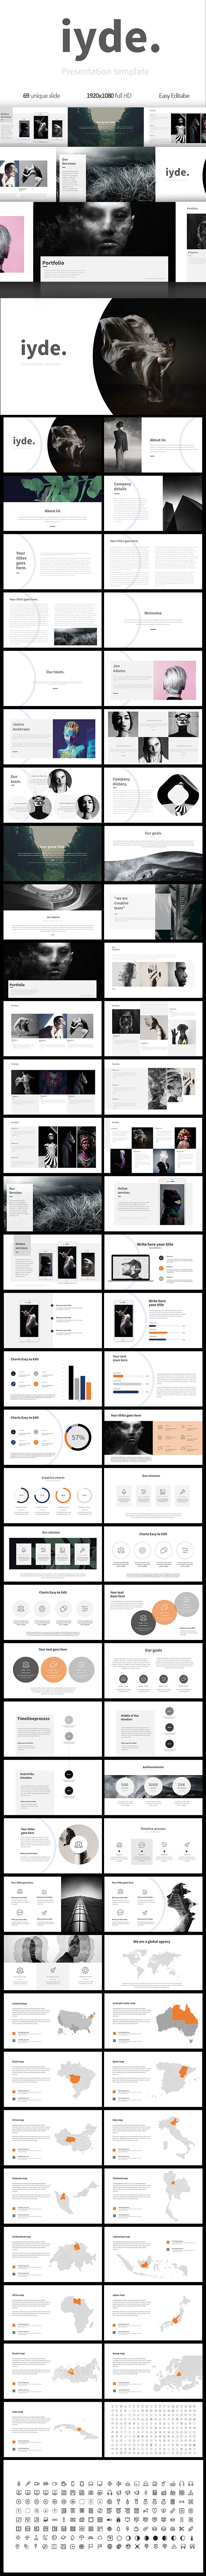 Iyde PowerPoint Presentation - PowerPoint Templates Presentation Templates